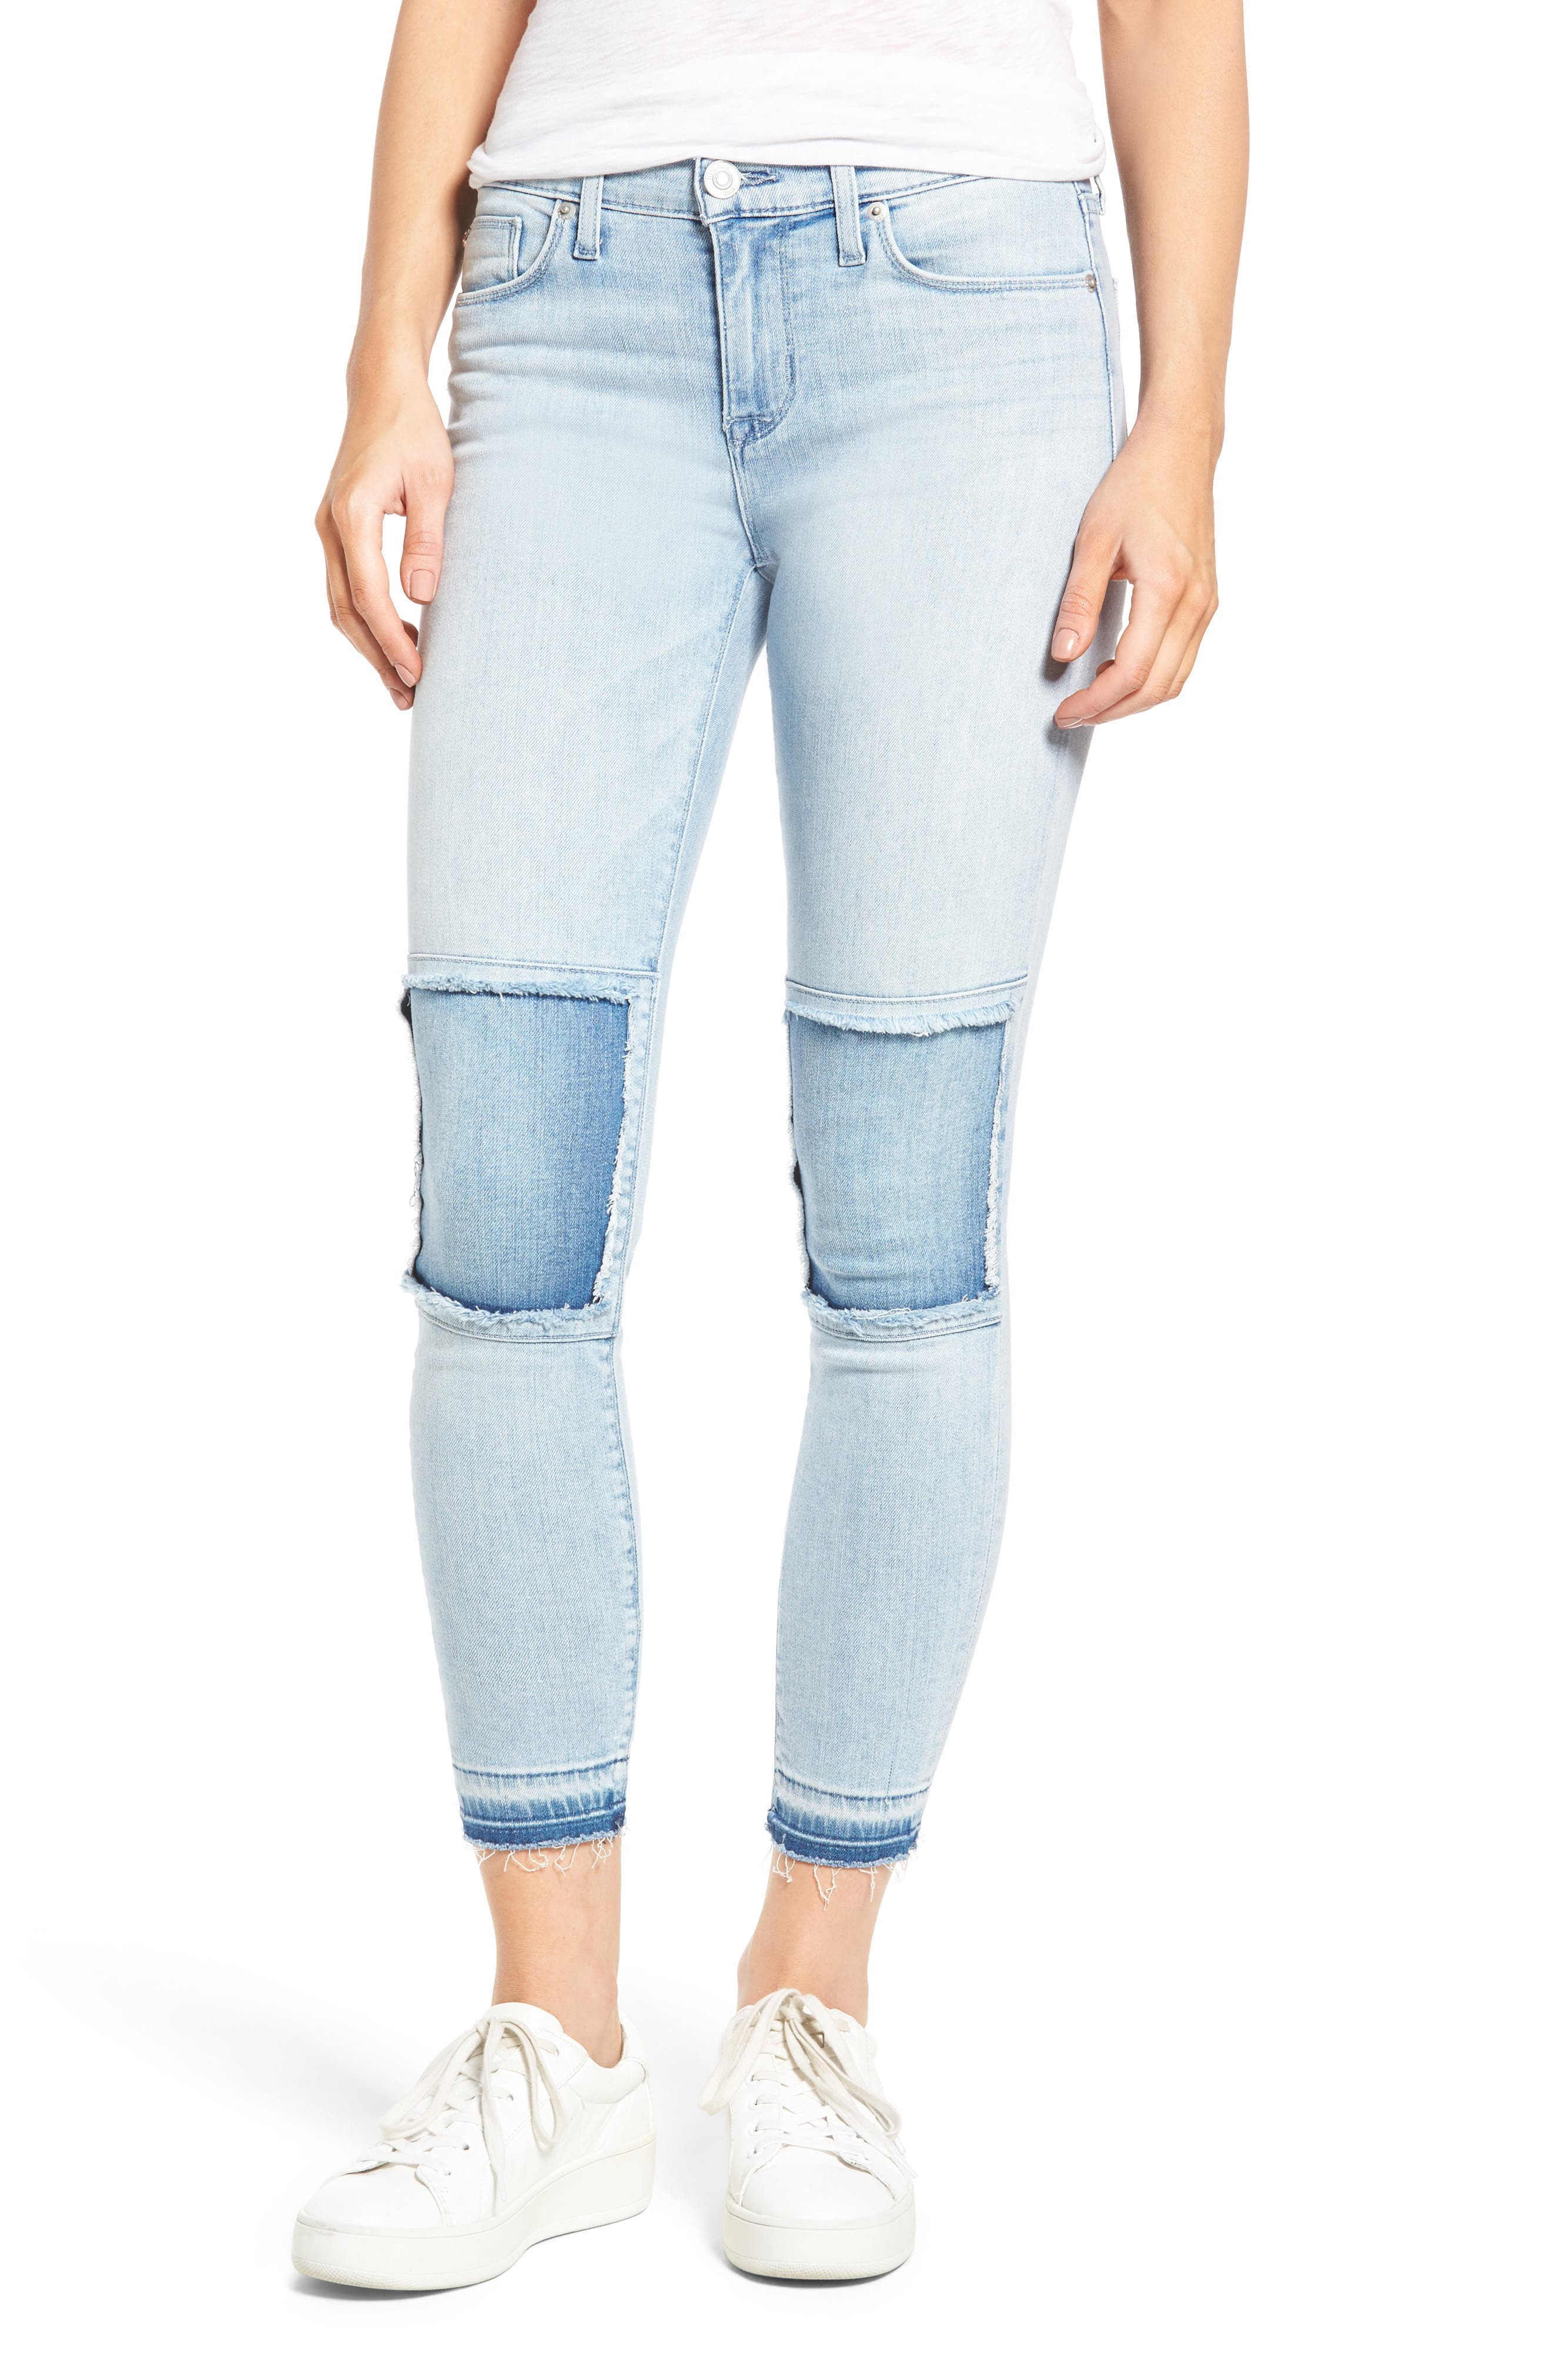 Szzi Mid Rise Patched Skinny Jeans,                         Main,                         color, Venue